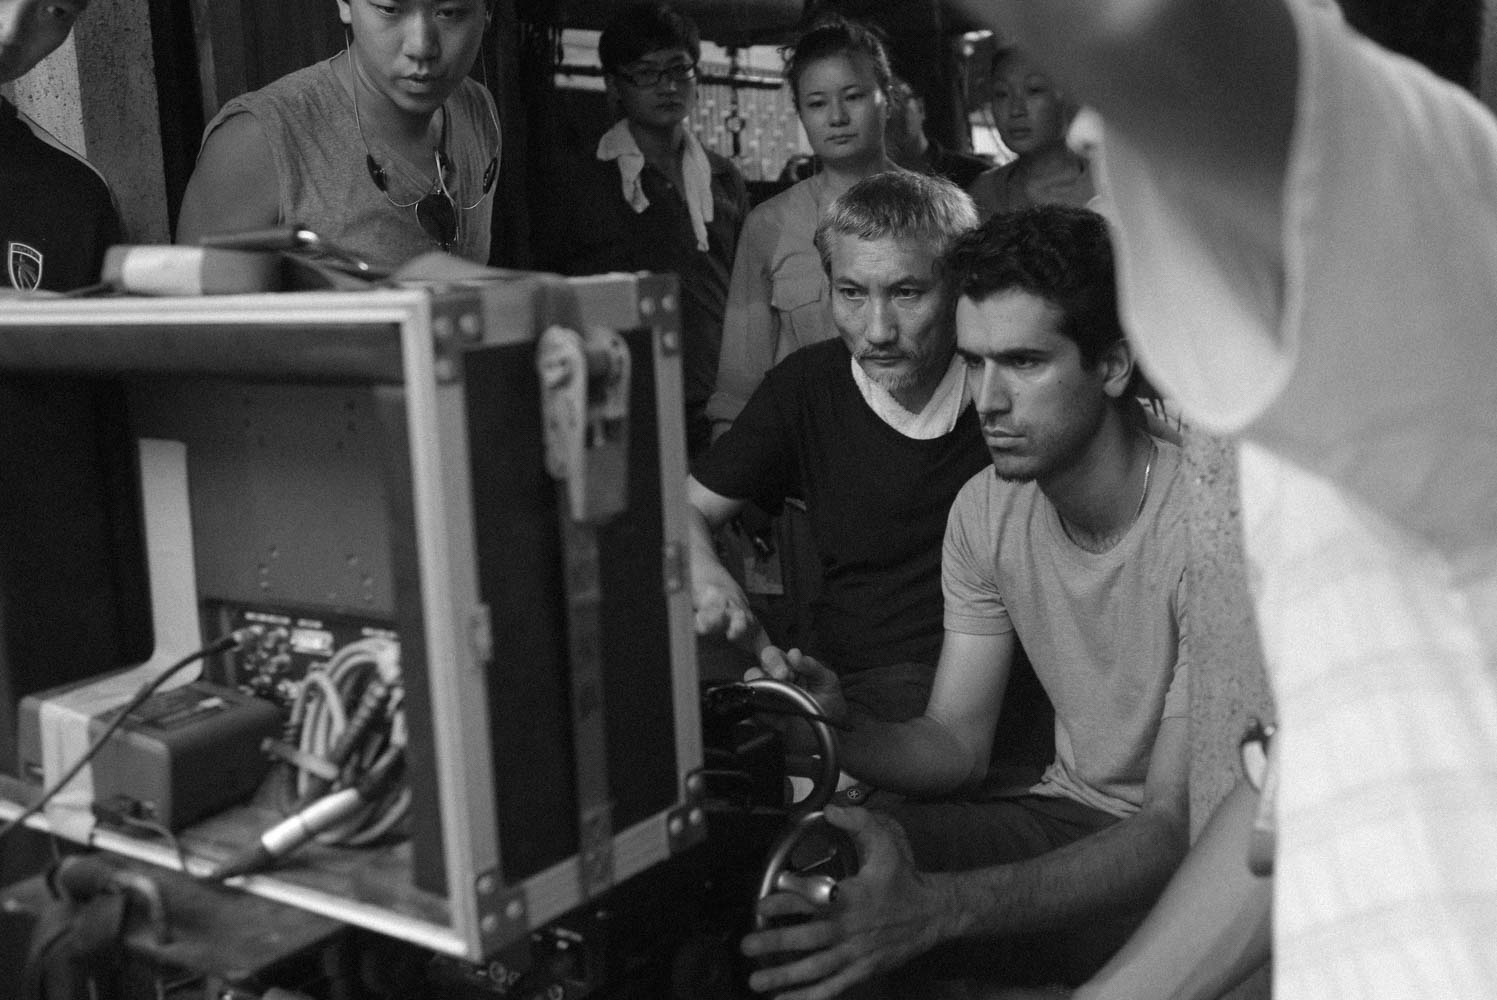 Operating a shot for Tsui hark on the set of Flying Swords of Dragon Gate.